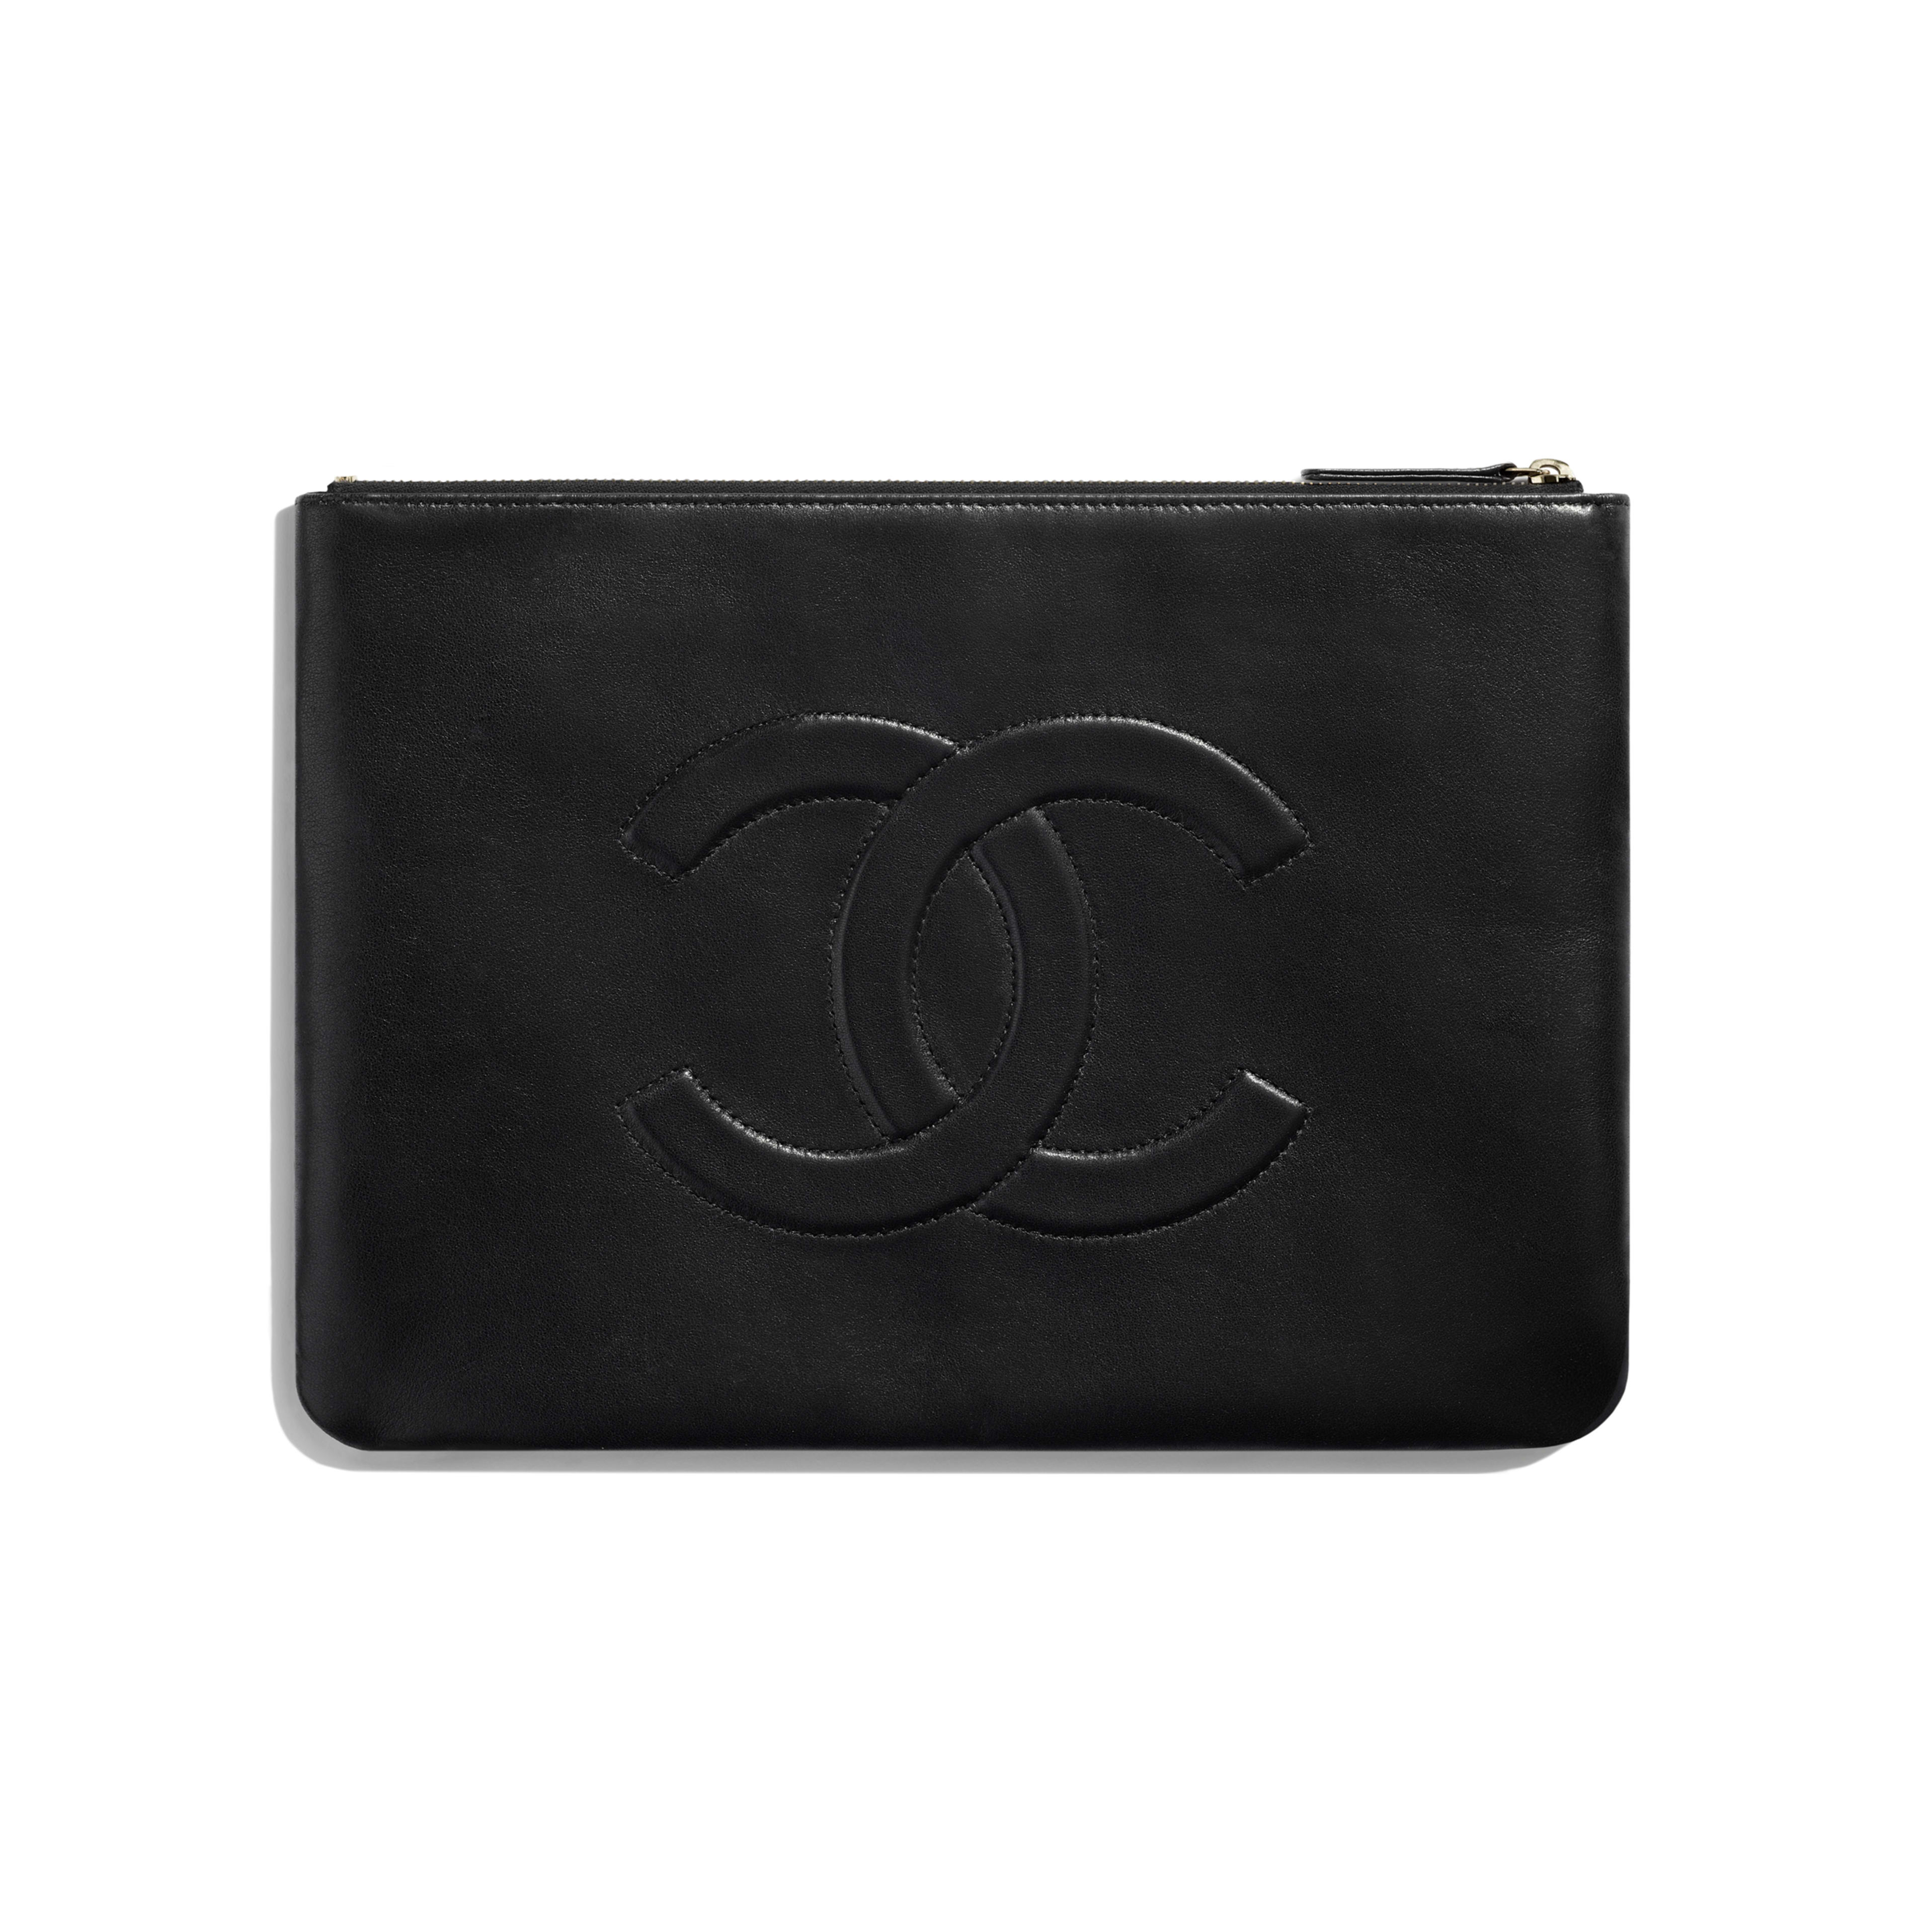 Pouch - Black - Lambskin & Gold-Tone Metal - Alternative view - see full sized version